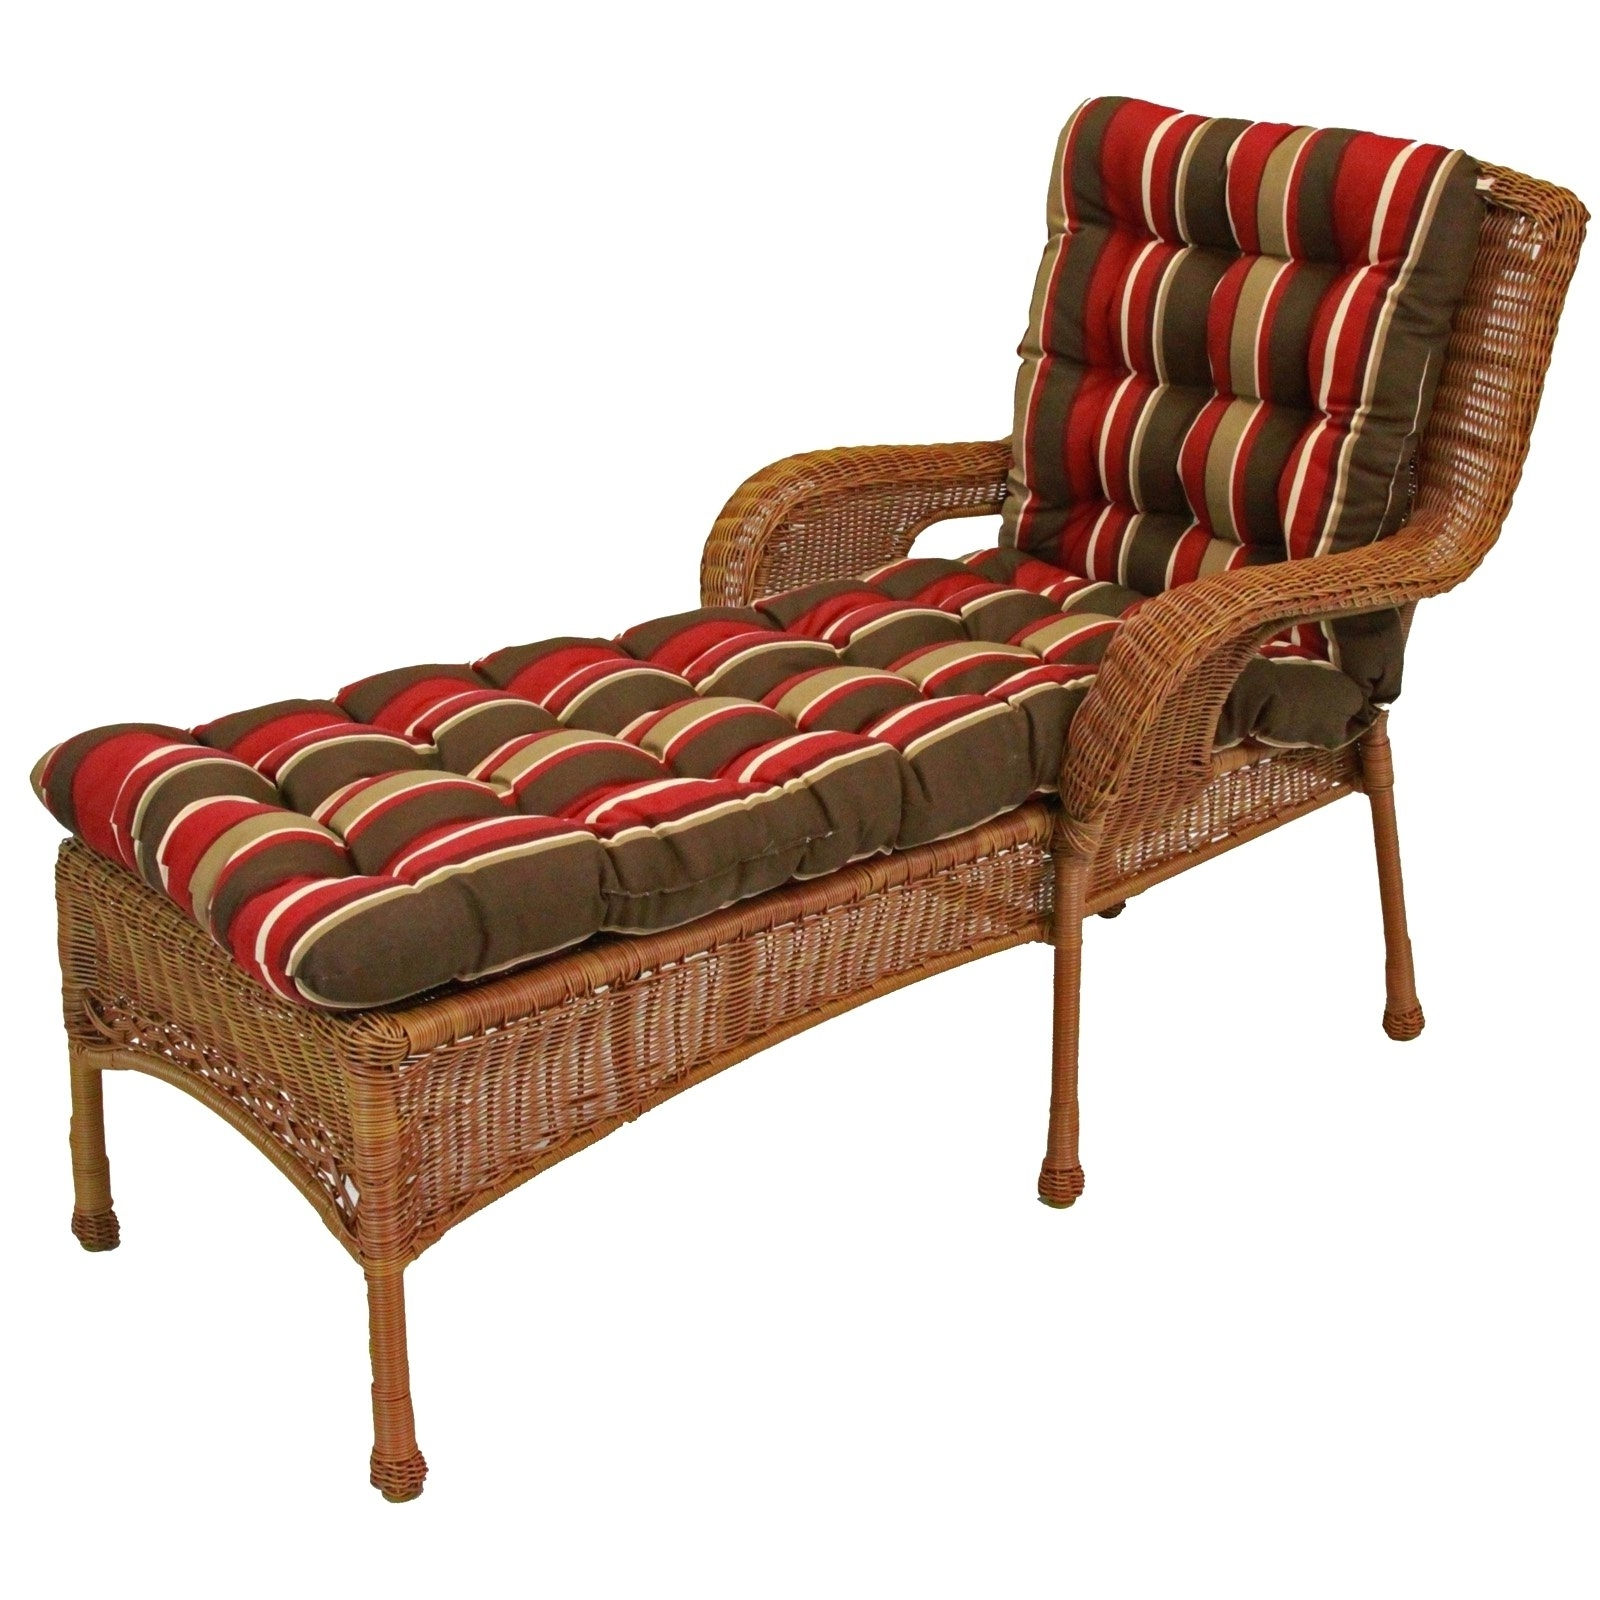 Trendy Keter Chaise Lounge Chairs Pertaining To Rattan Chaise Lounge Chair Indoor • Lounge Chairs Ideas (View 15 of 15)